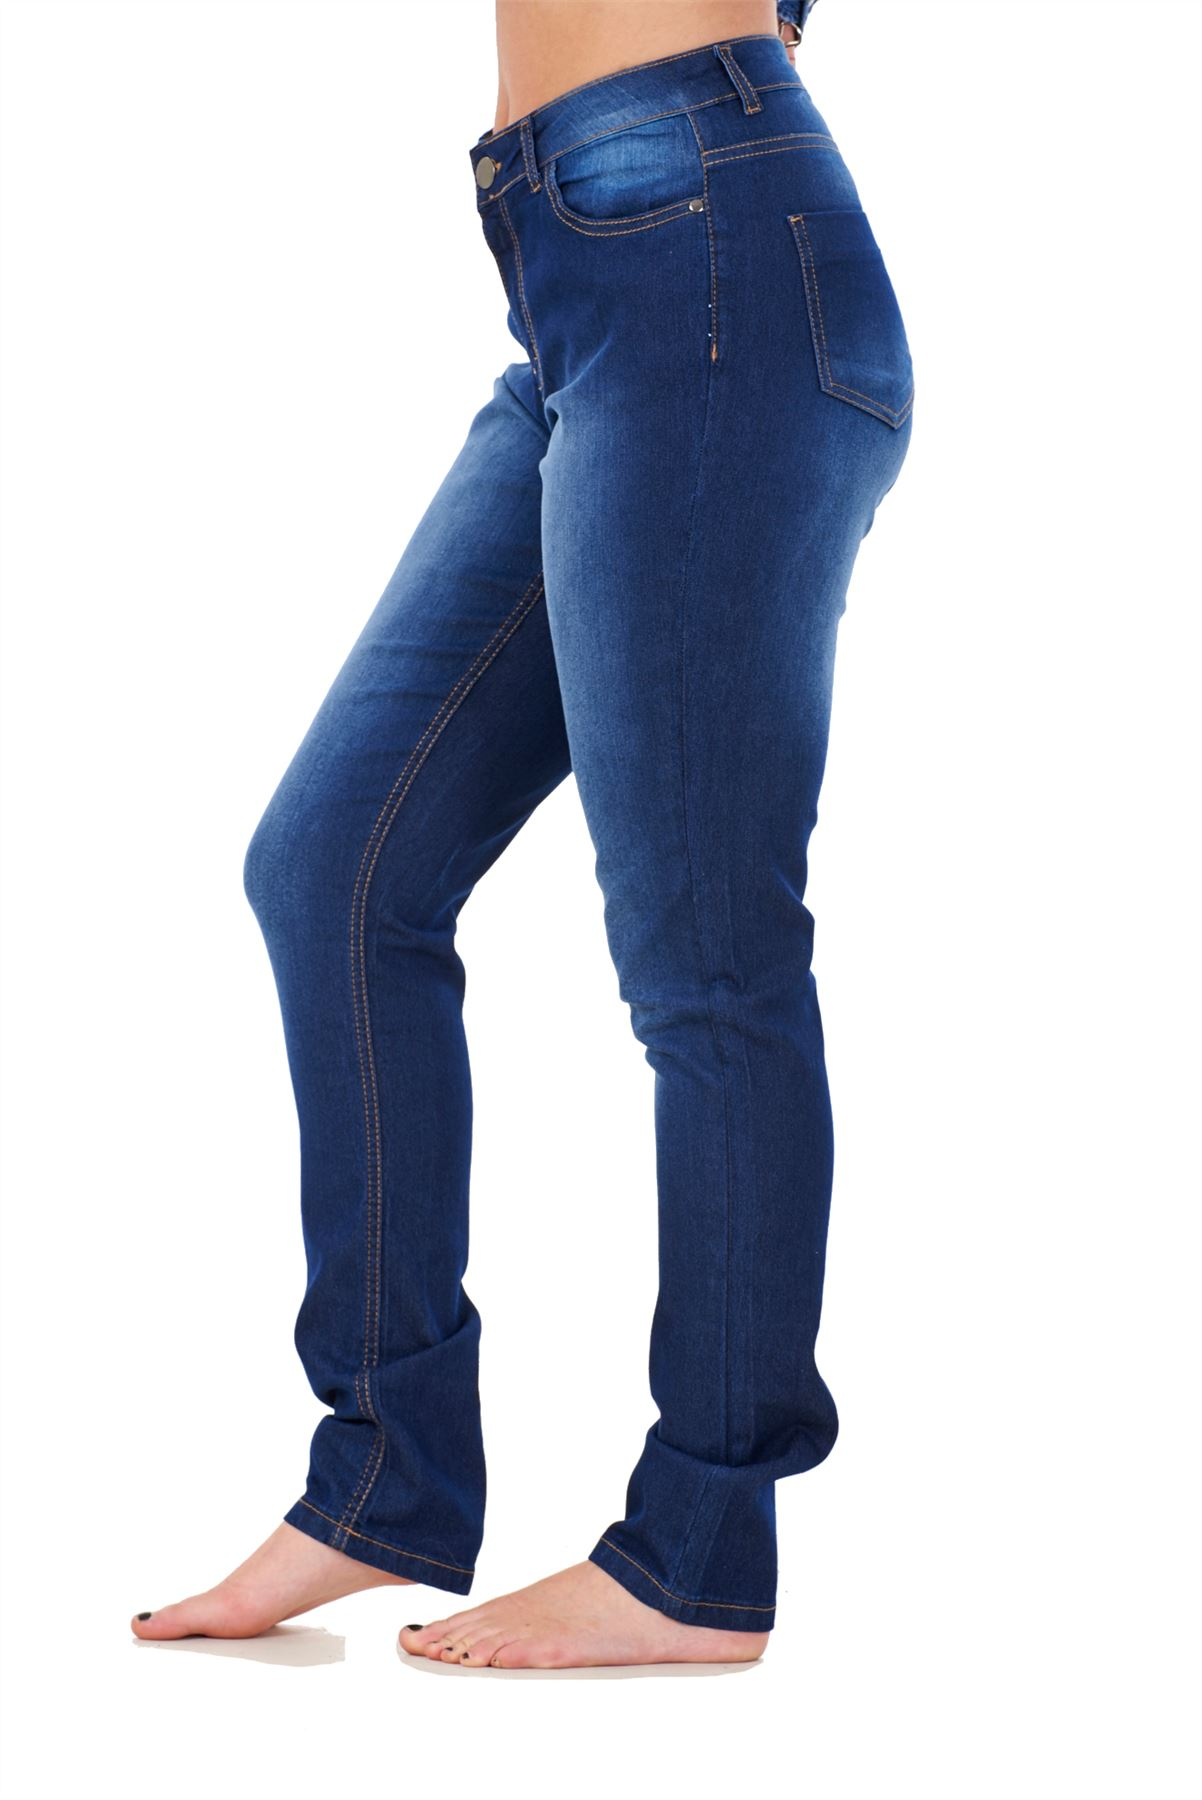 Ladies-Stretch-Jeans-Denim-cotton-Zip-fly-High-Waisted-Slim-Fit-Trousers-Pants thumbnail 14